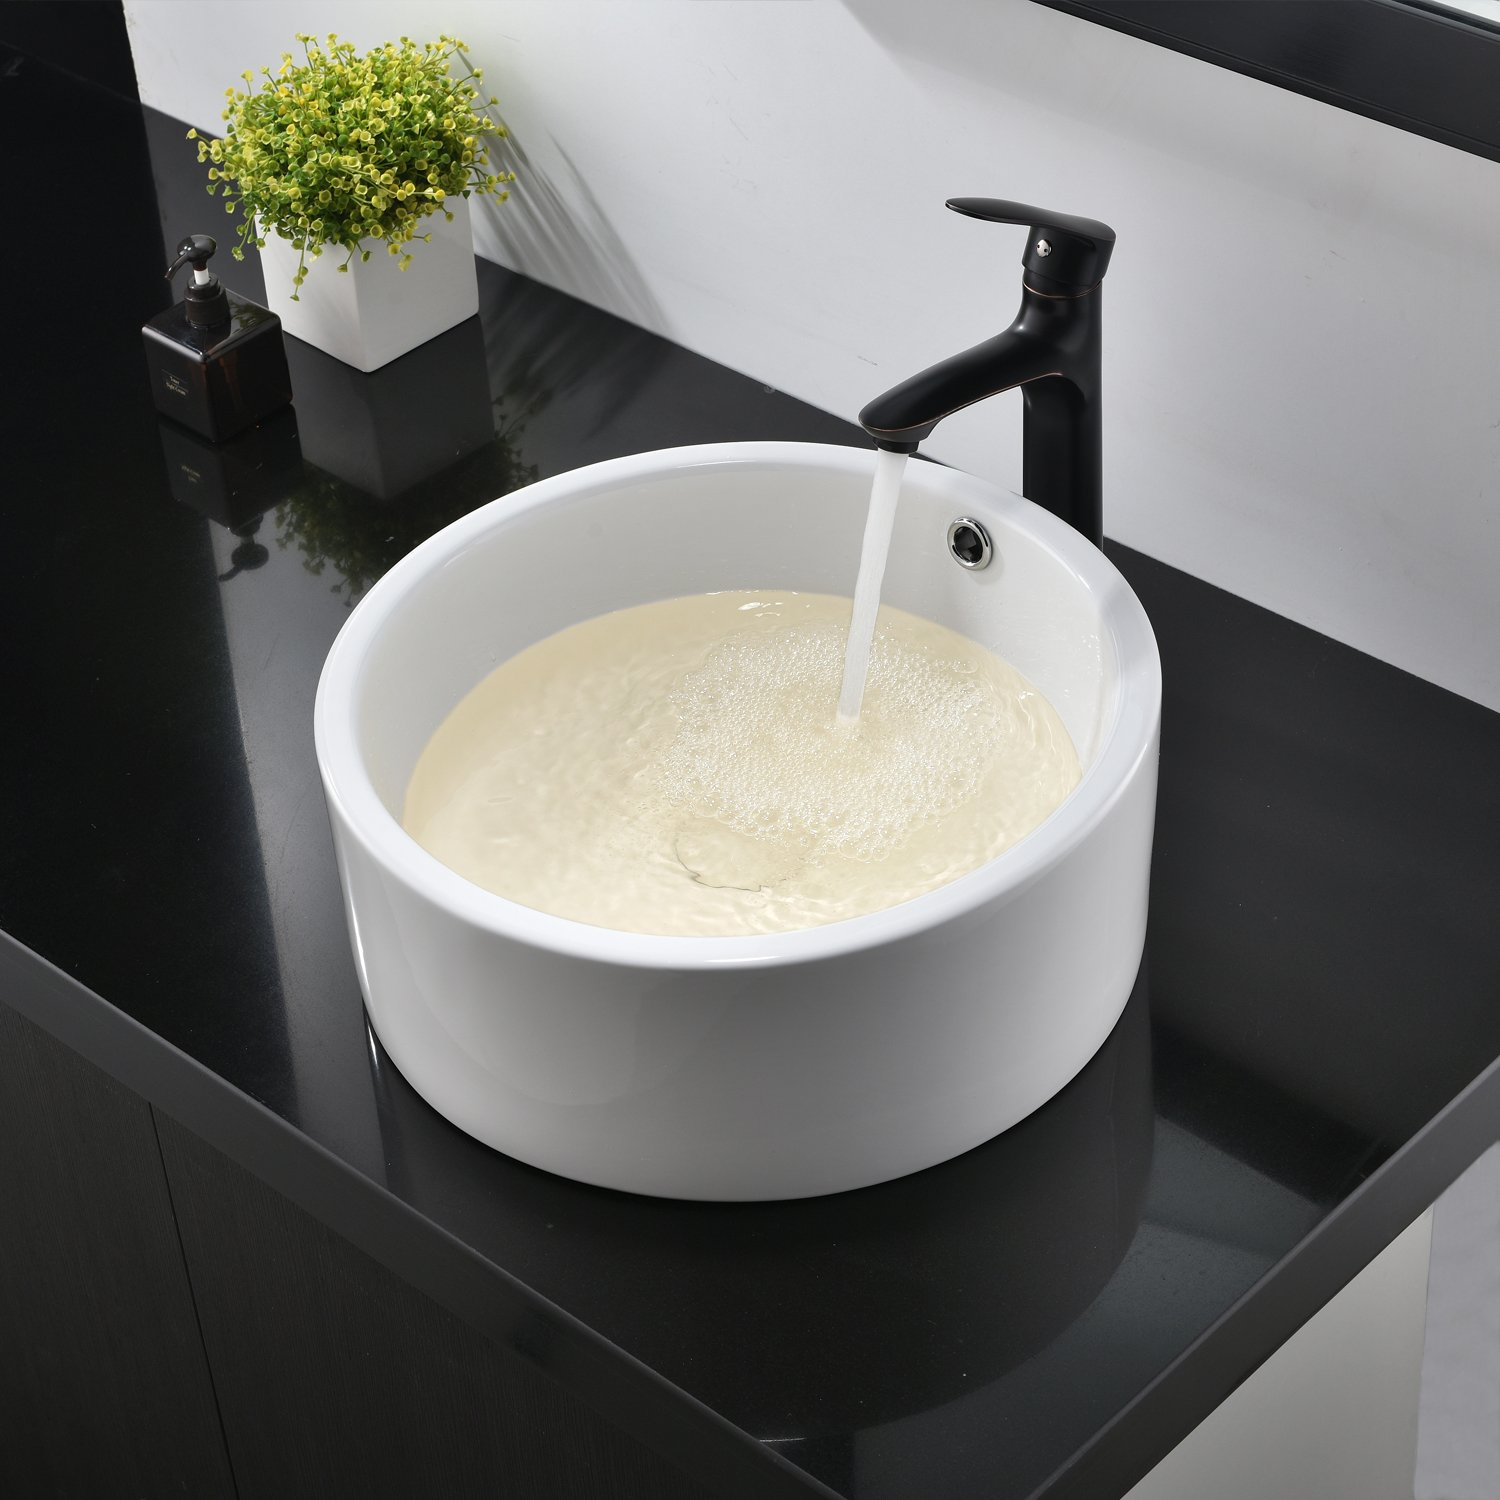 Hotis White Porcelain Ceramic Countertop Bowl Lavatory Round Above Counter Vanity Bathroom Vessel Sink by HOTIS HOME (Image #5)